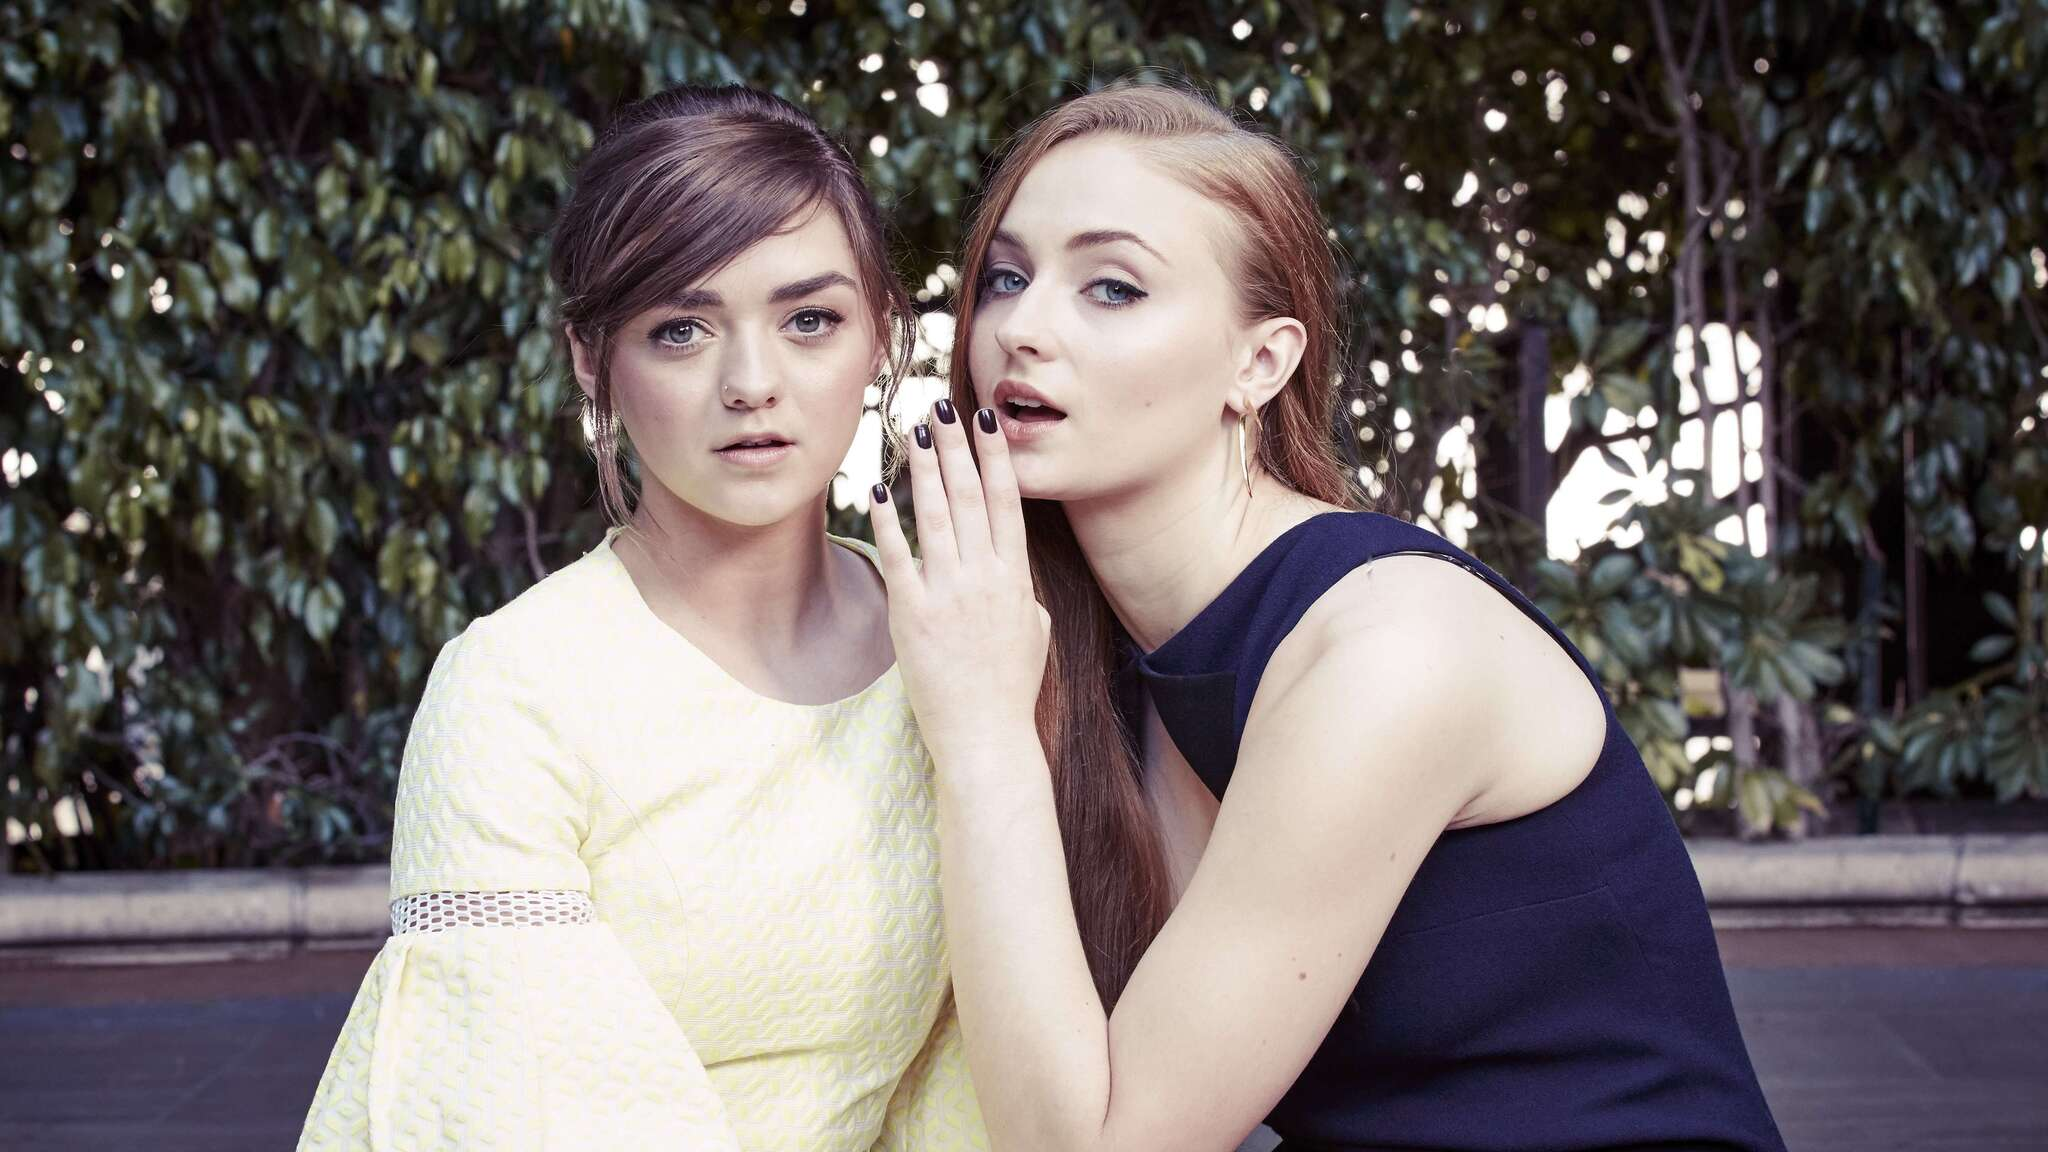 sophie-turner-and-maisie-williams-sc.jpg